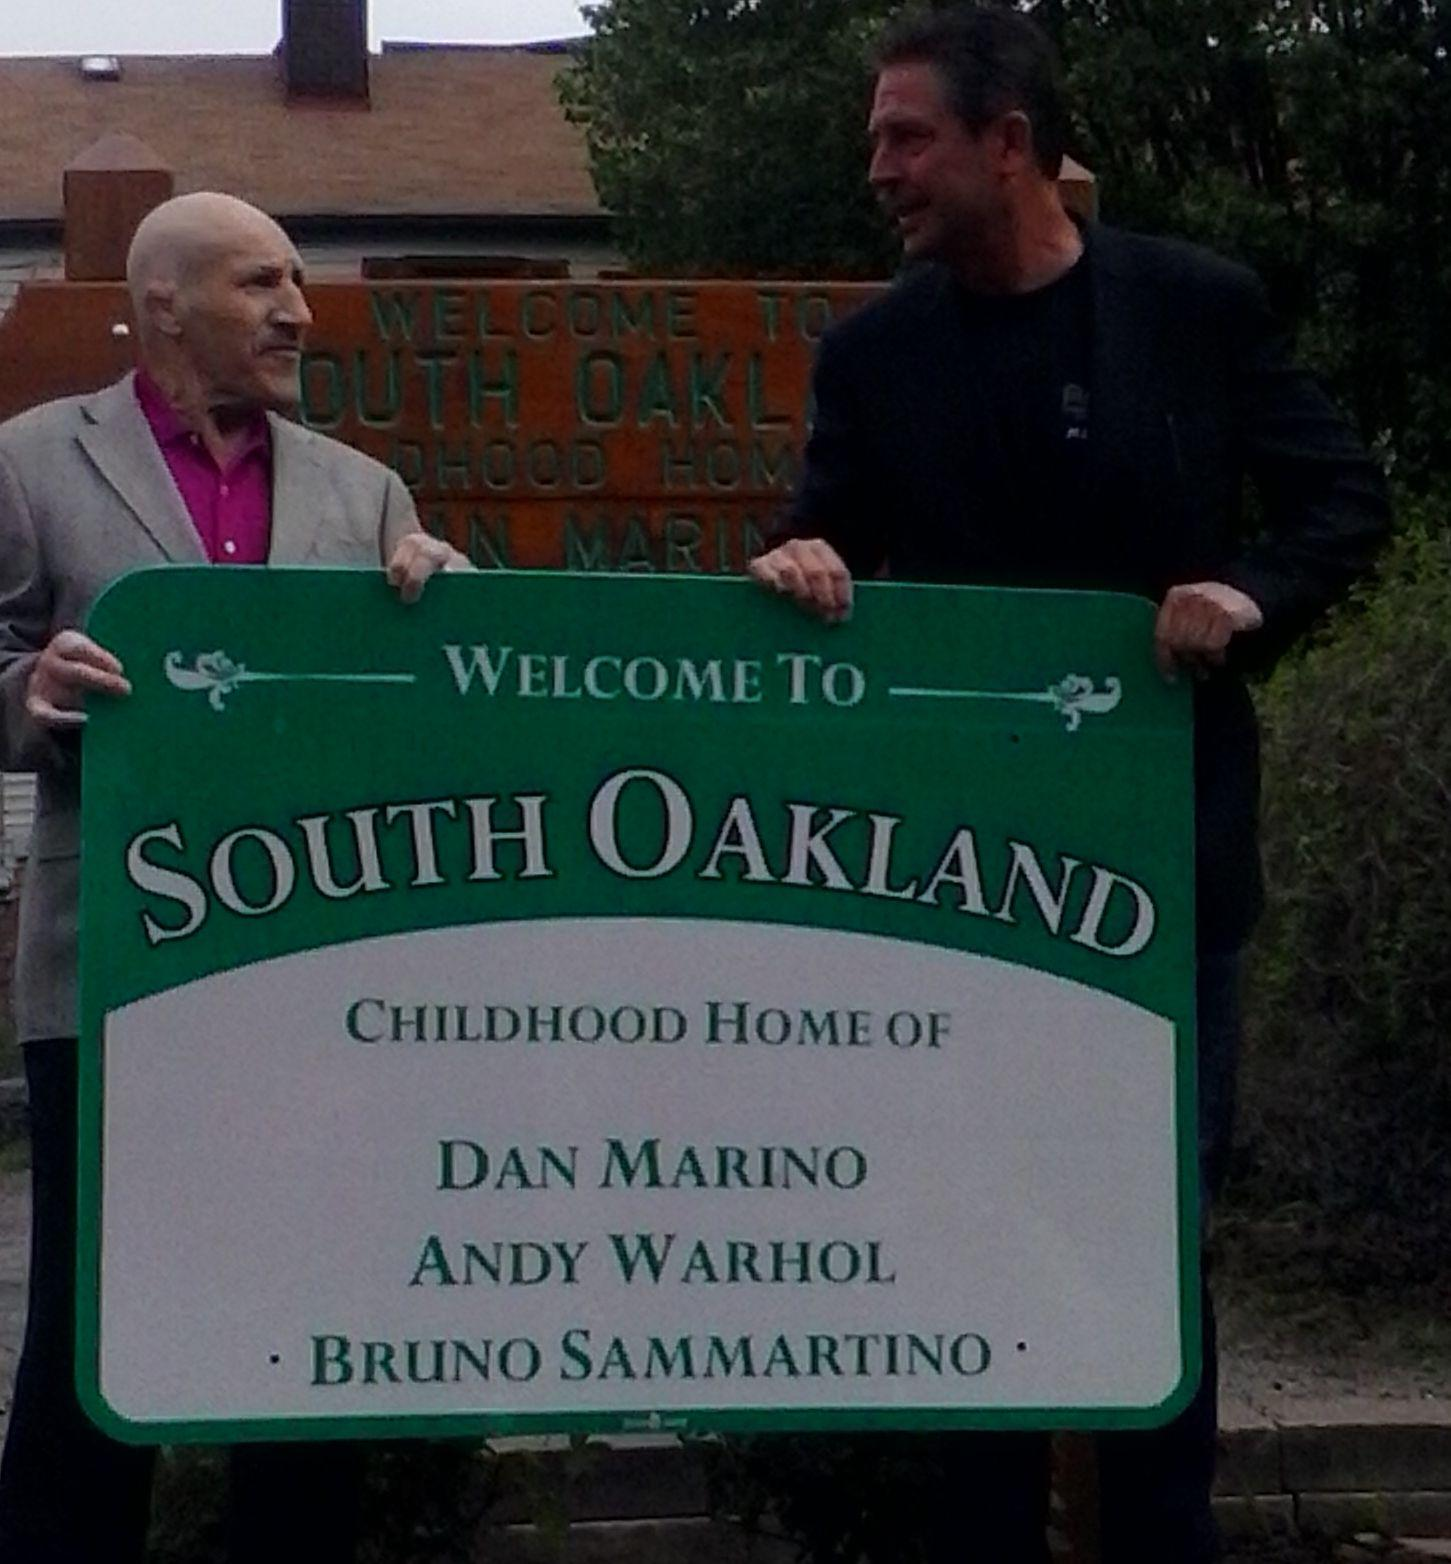 Bruno Sammartino and Dan Marino hold up a sign dedicated to them and Andy Warhol on Tuesday morning. Alexa Bakalarski / News Editor